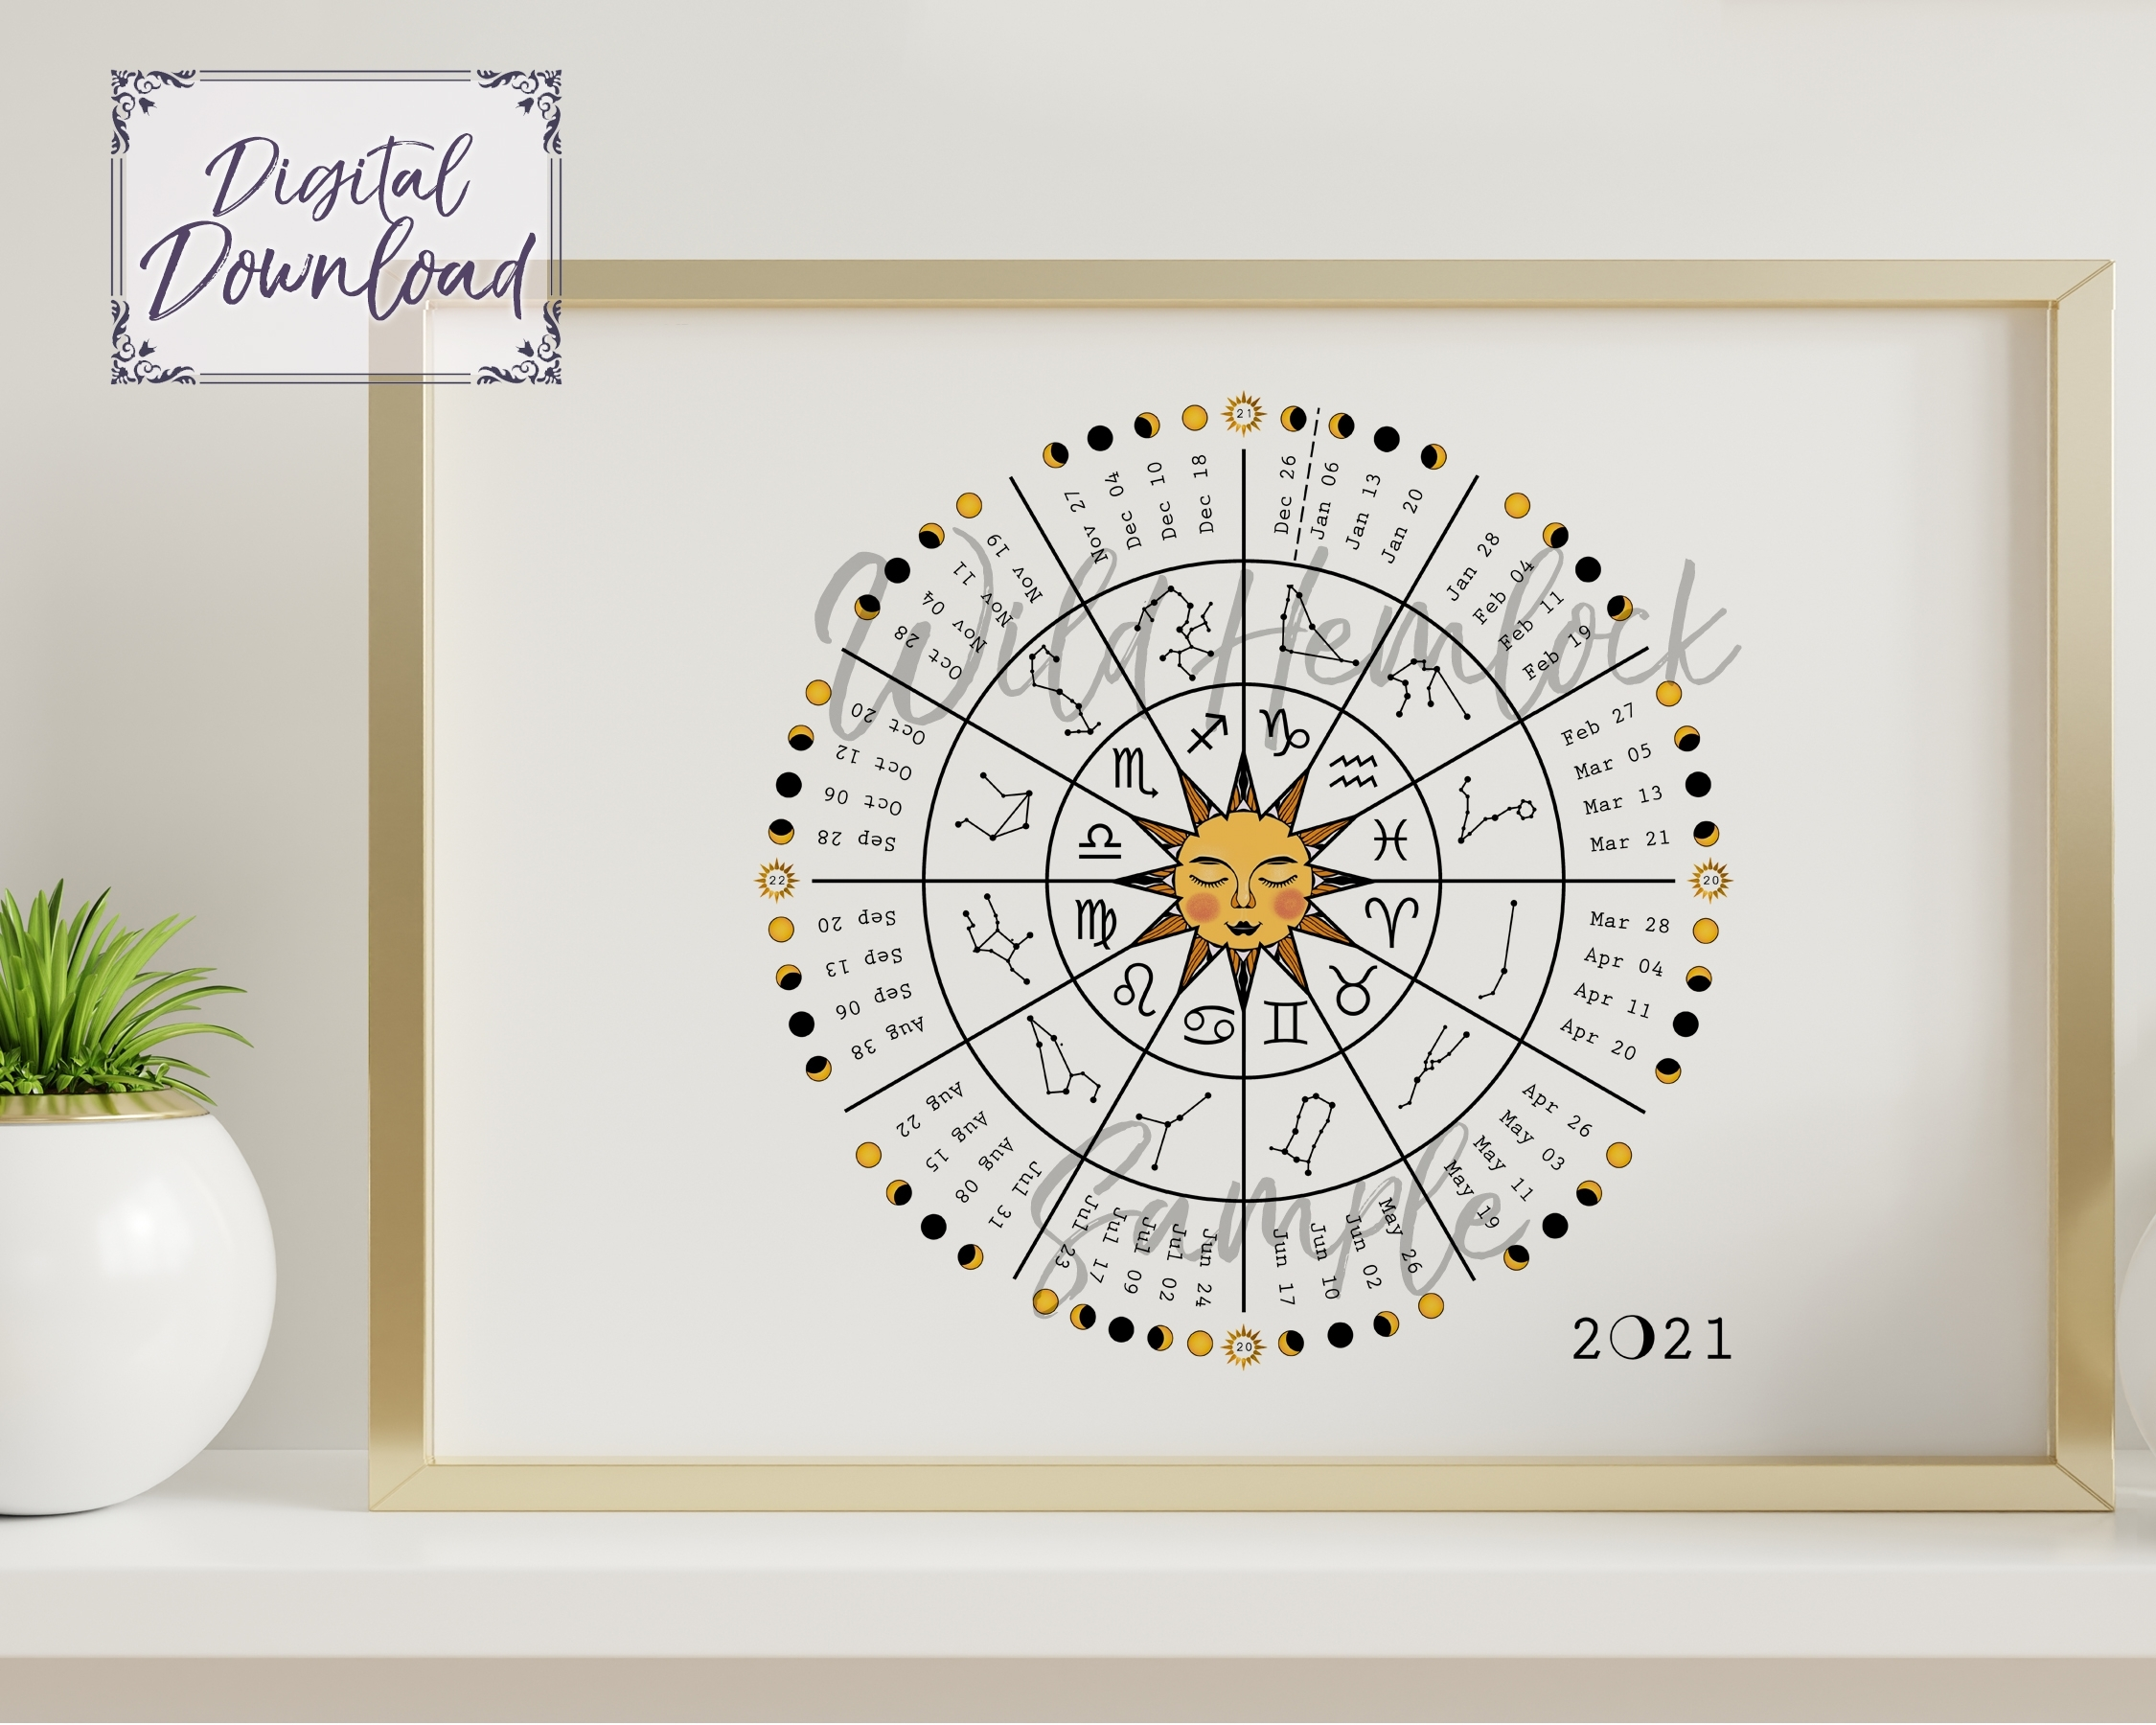 2021 Zodiac Wheel Moon Calendar Astrology Lunar Calendar